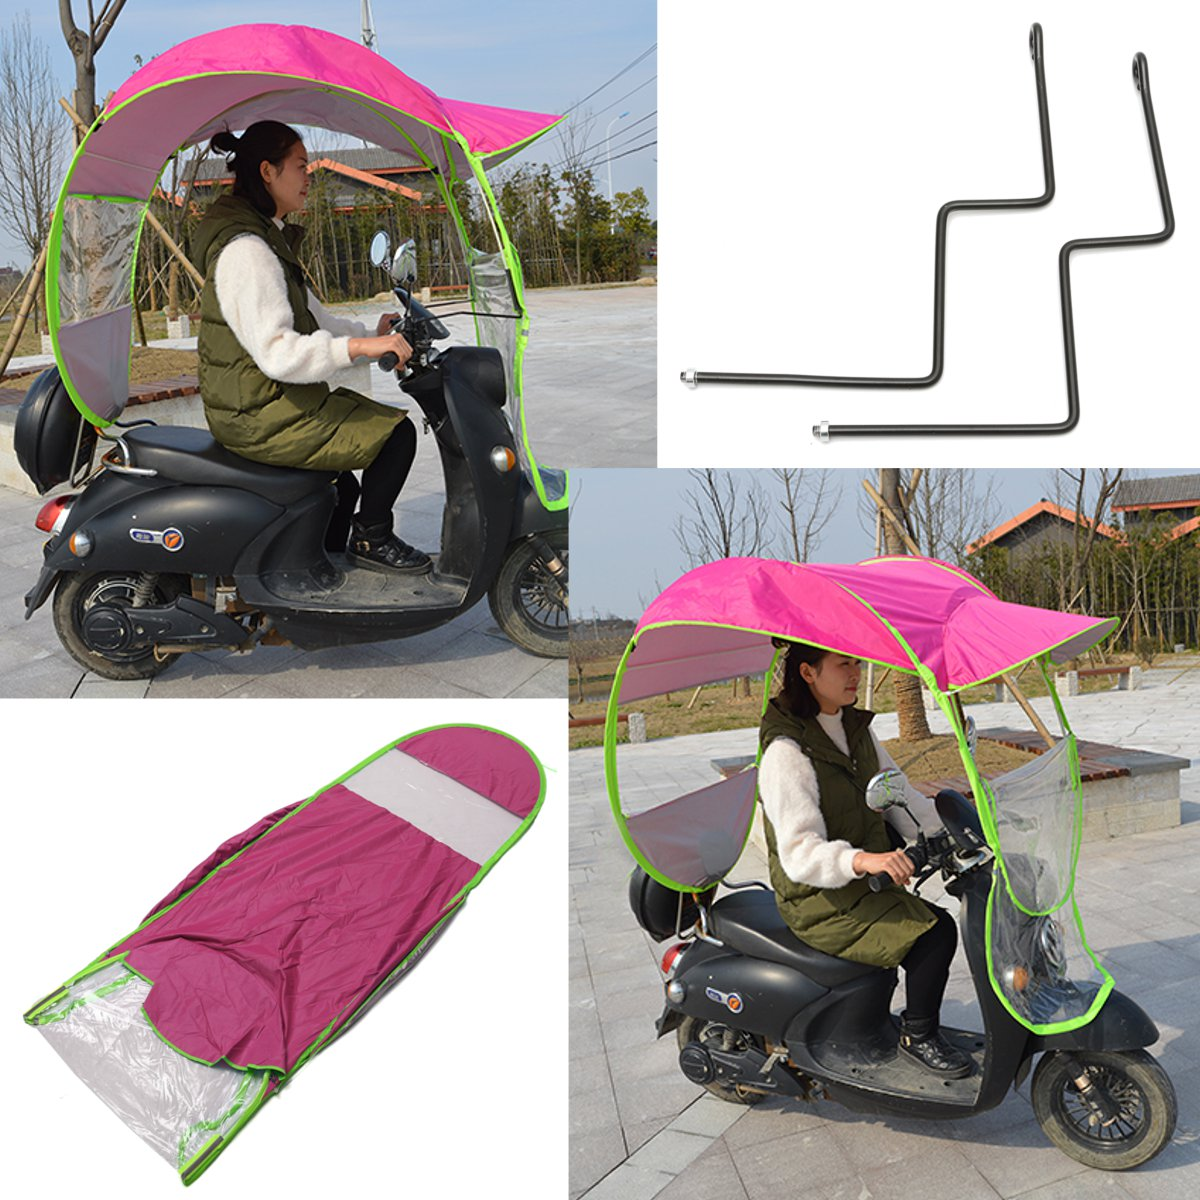 Protective Gear Motorcycle Accessories & Parts 2.8*0.8*0.7m Motorbike Scooter Rain Cover Motorcycle Electric Sun Shade Vehicle Umbrella Raincoat Poncho Cover Shelter Neither Too Hard Nor Too Soft